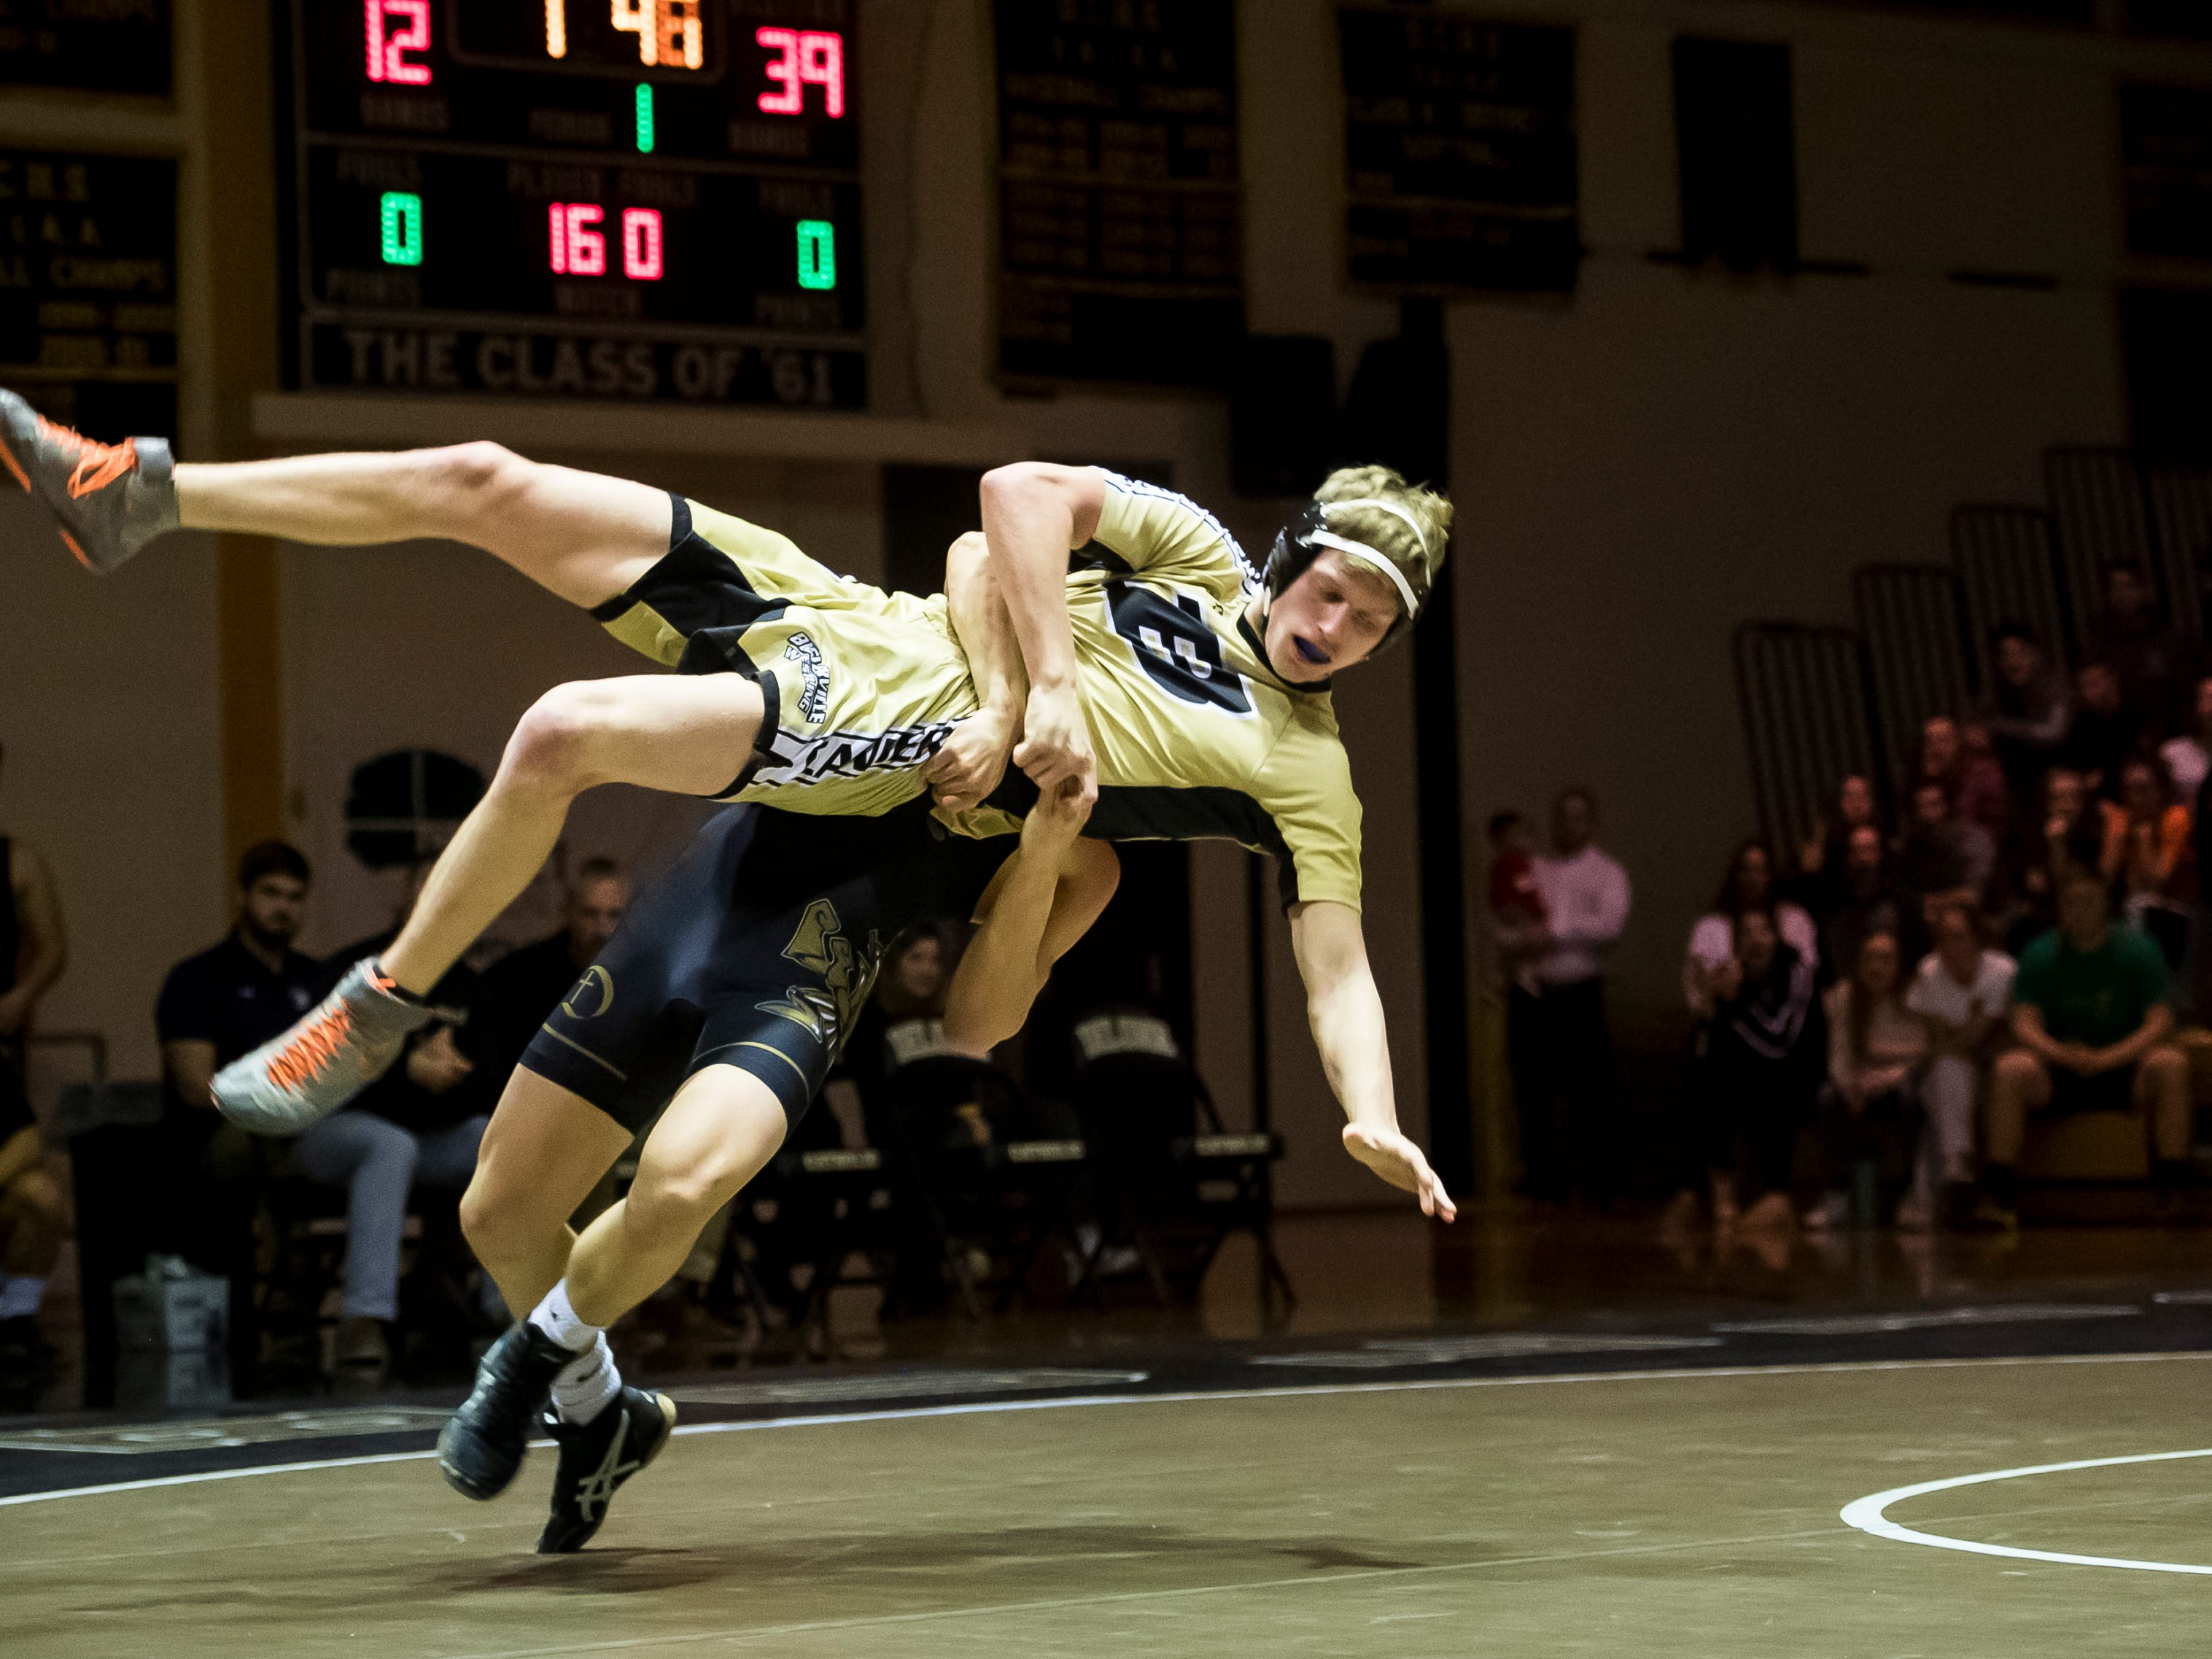 Delone Catholic's Robert Partenza takes down Biglerville's Tristan Metzger in the 160-pound bout at Delone Catholic High School on December 19, 2018. Partenza won 11-6 but the Canners won the duel 51-21.